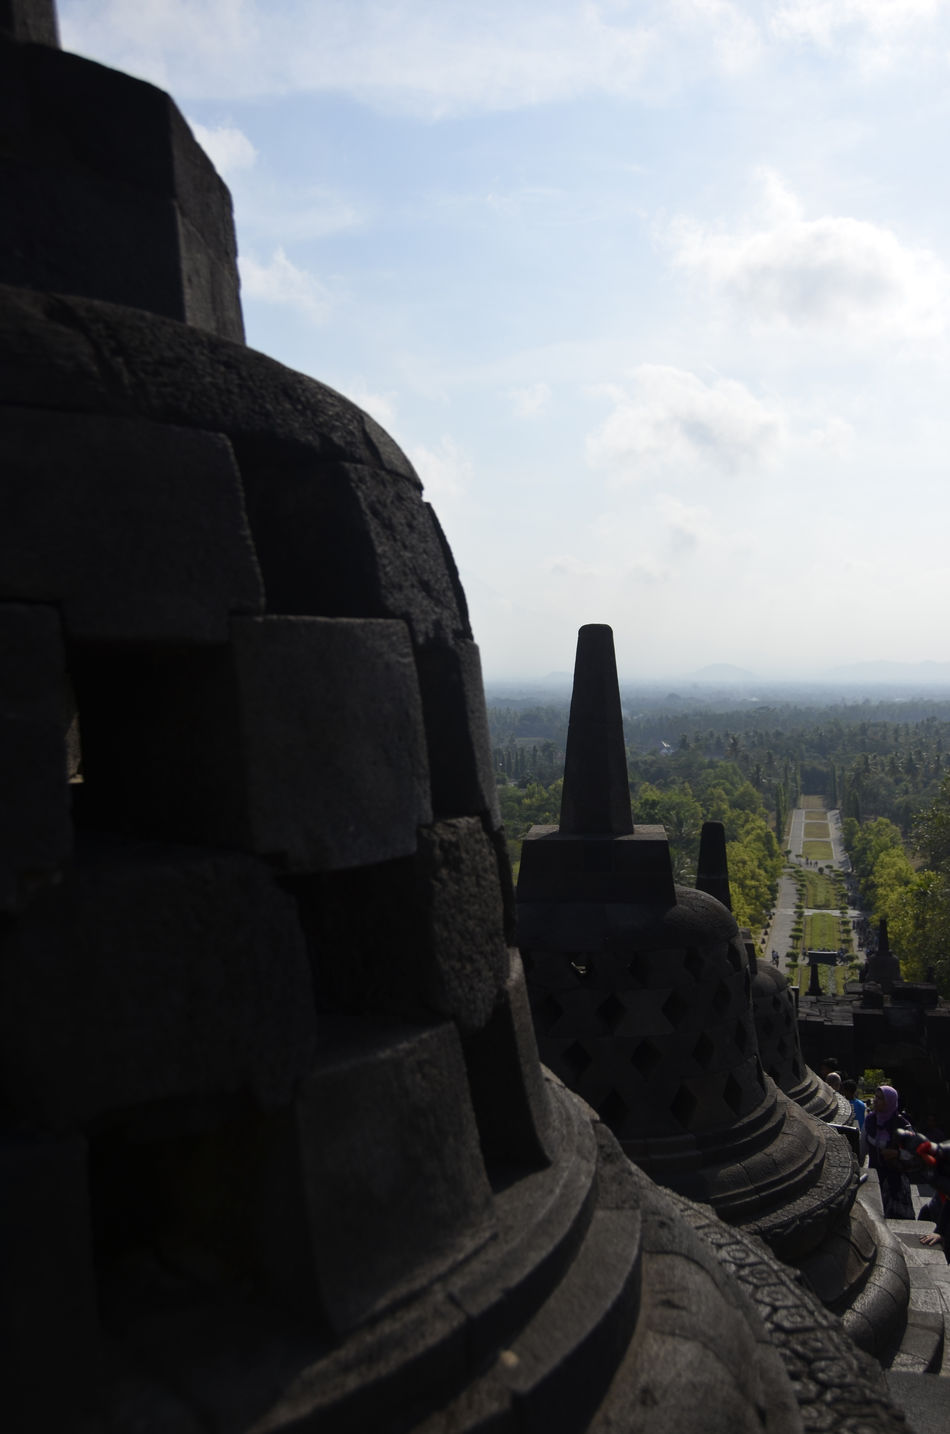 Borobudur temple in Central Java, Indonesia Architecture Borobudur Buddha Buddha Statue Buddhist Architecture Buddism Day Early Morning Hindu Temple Hinduism Holy Sites INDONESIA Japan Java No People Outdoors Sacred Sacred Places Sites Statues Stupa Sunrise Temple Temple Architecture Yogyakarta